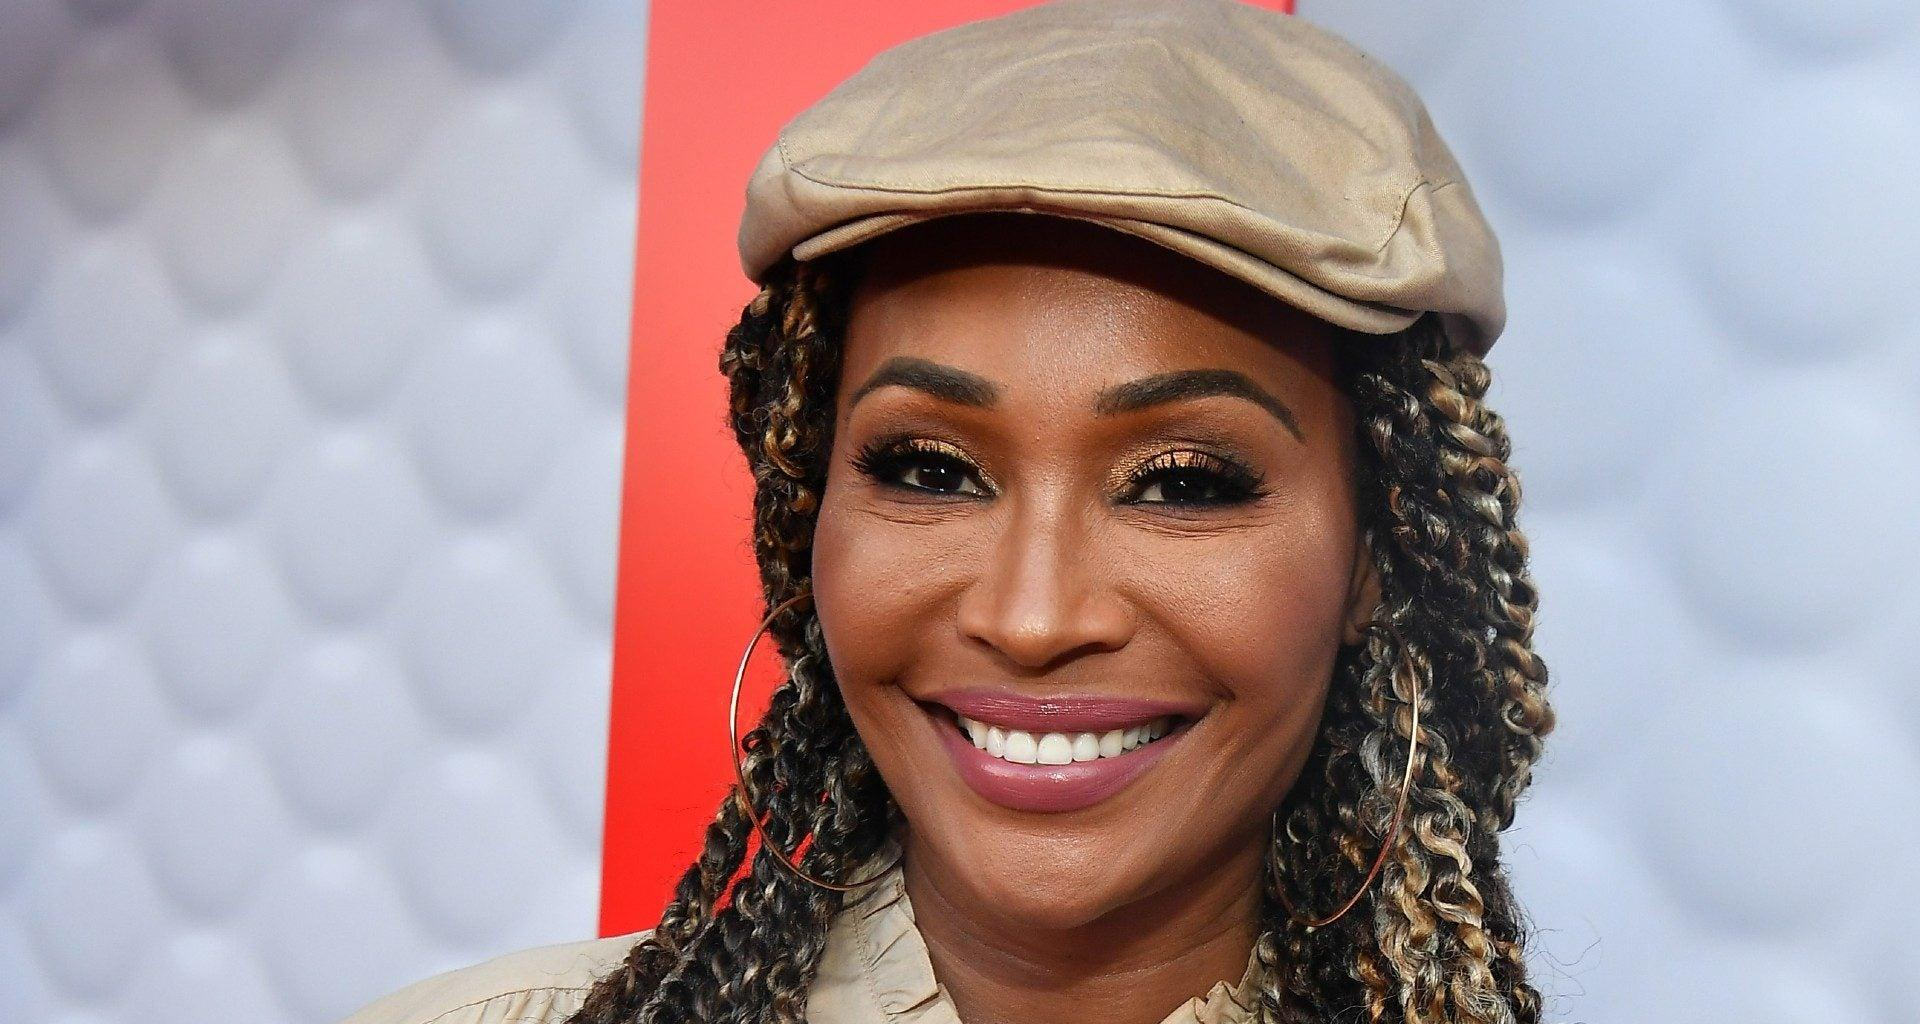 Cynthia Bailey Makes Fans' Day With This Photo Featuring Some Sweet Kids